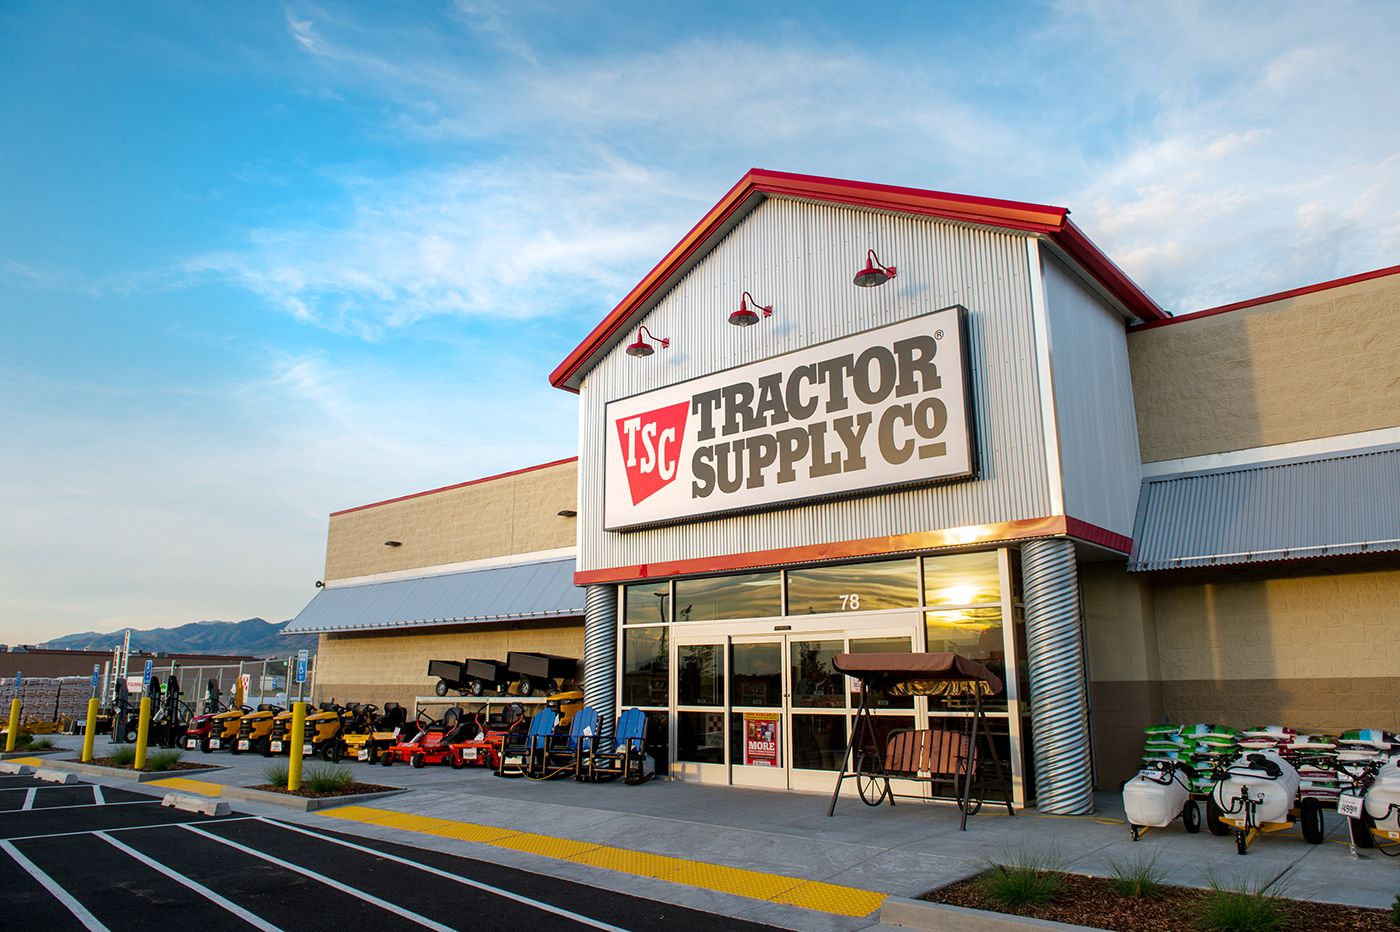 Tractor Supply Co. Storefront